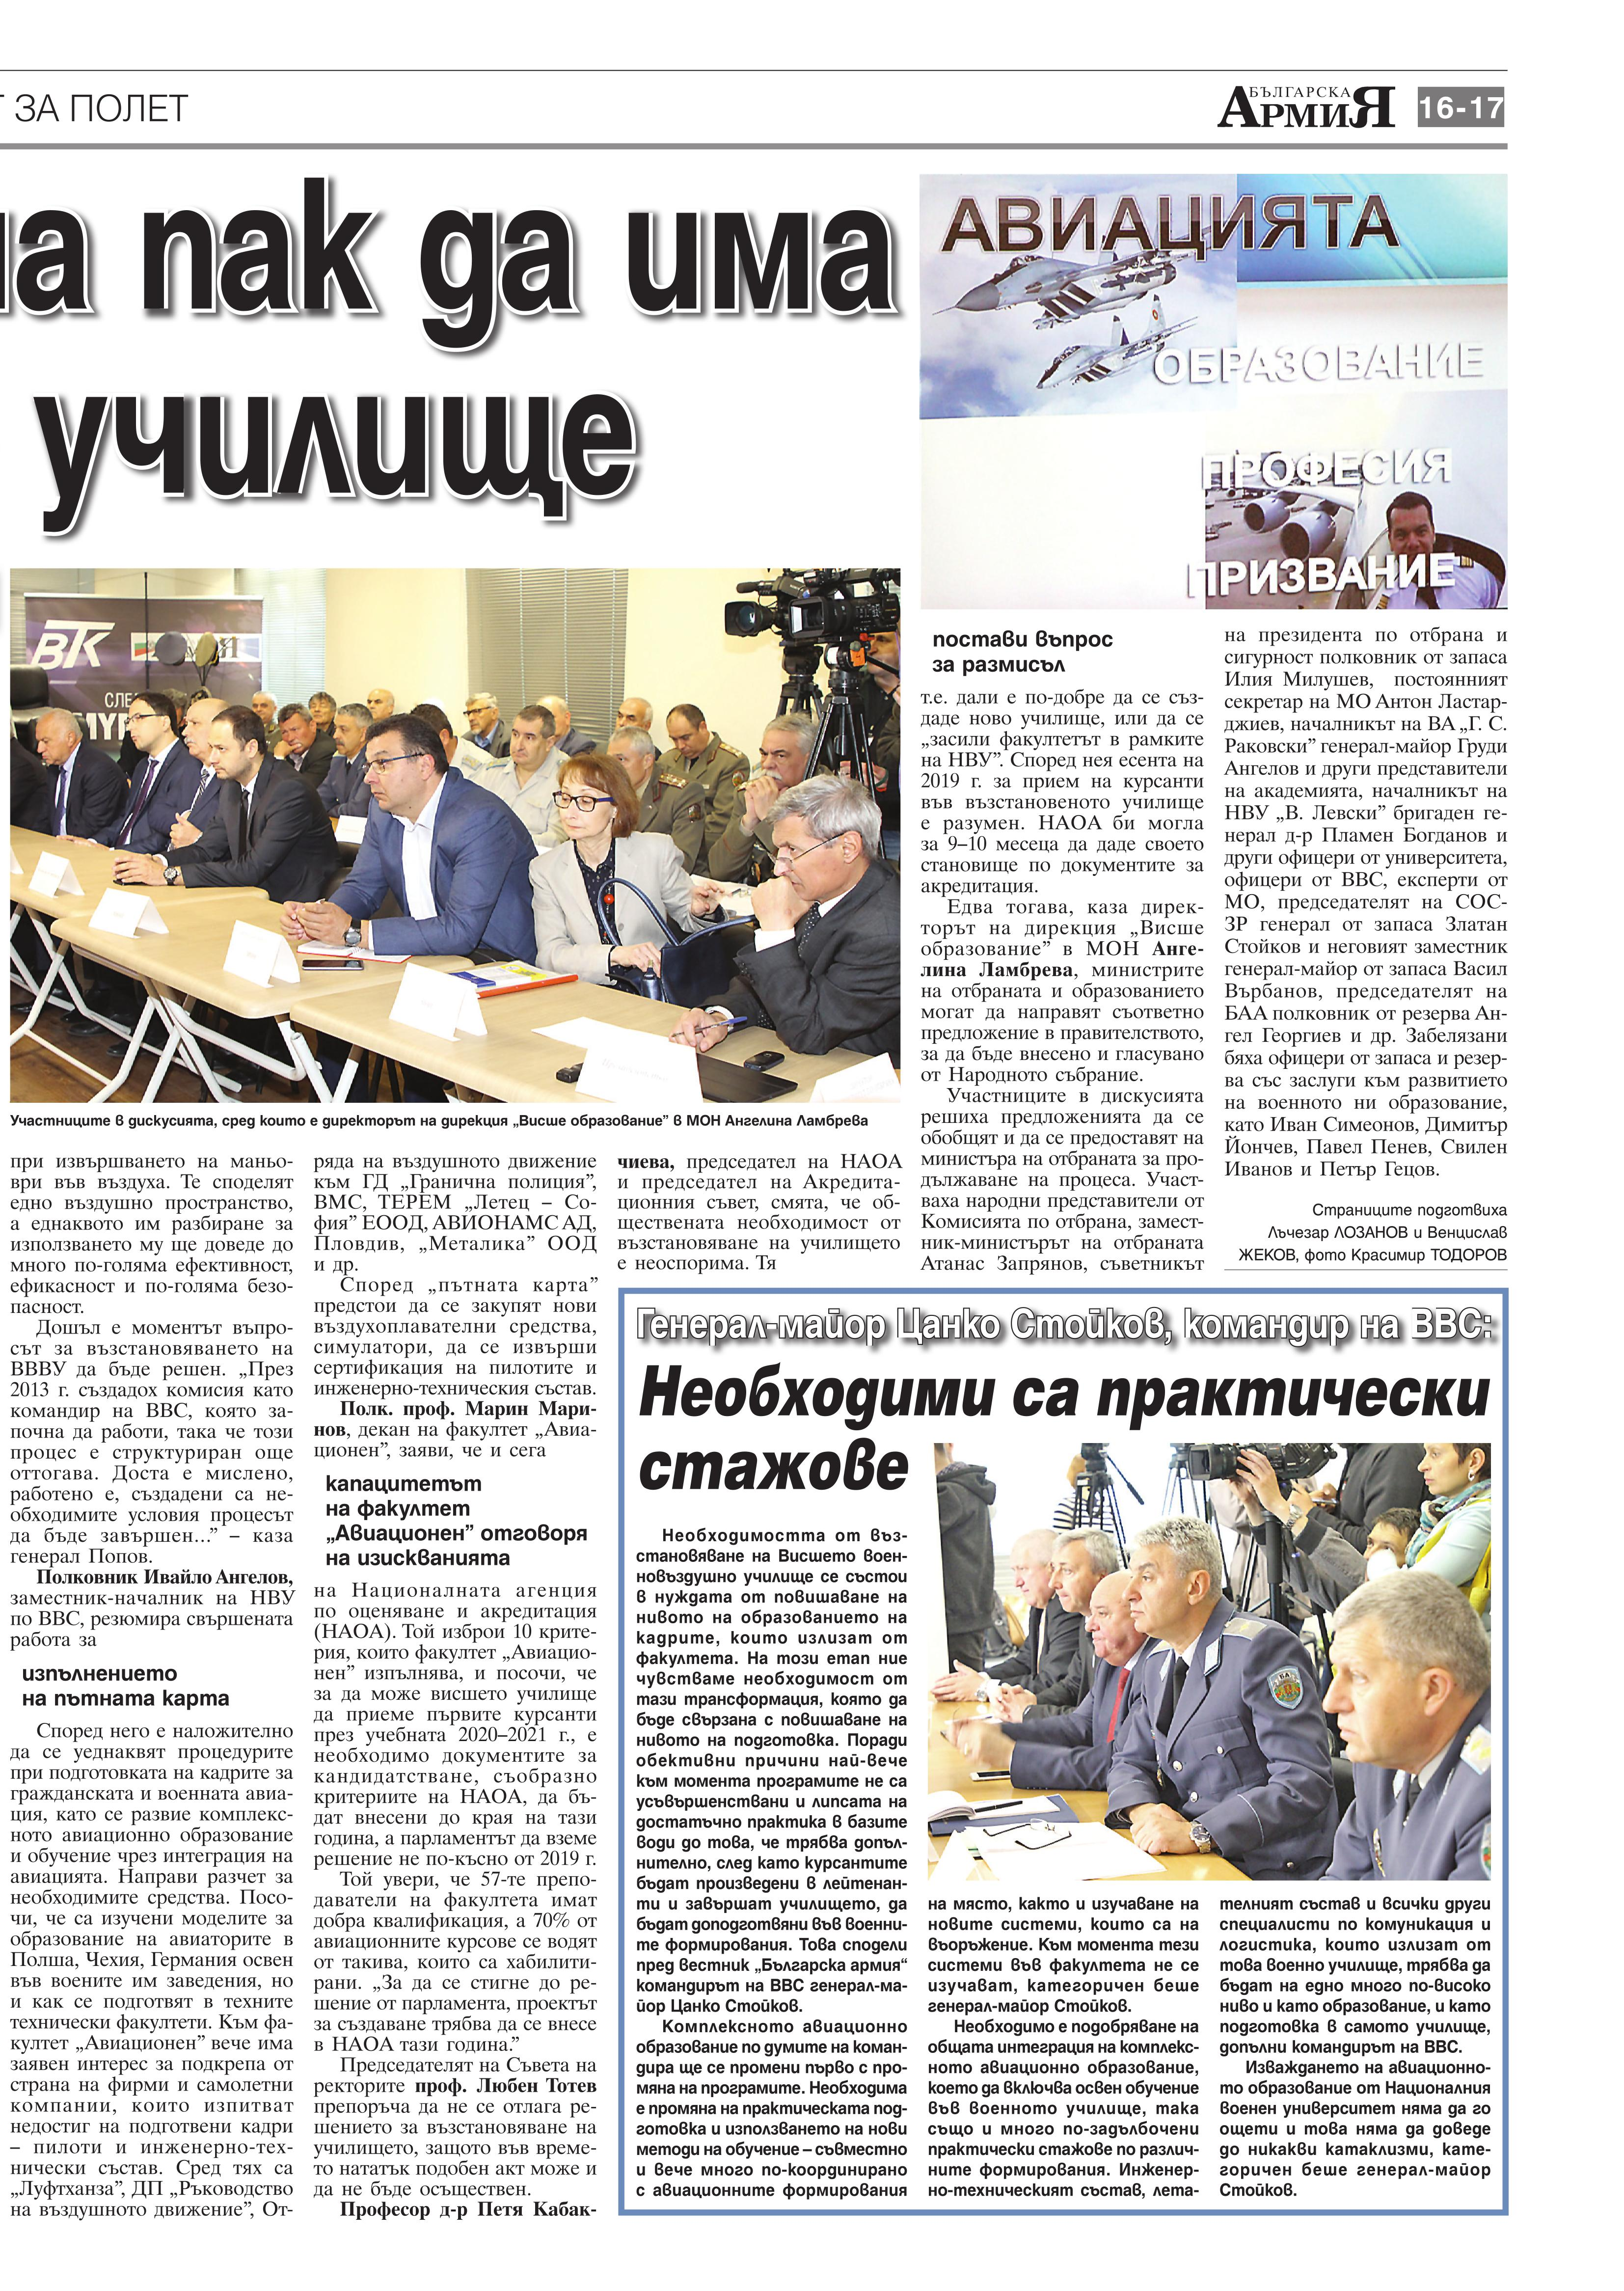 http://armymedia.bg/wp-content/uploads/2015/06/17.page1_-48.jpg